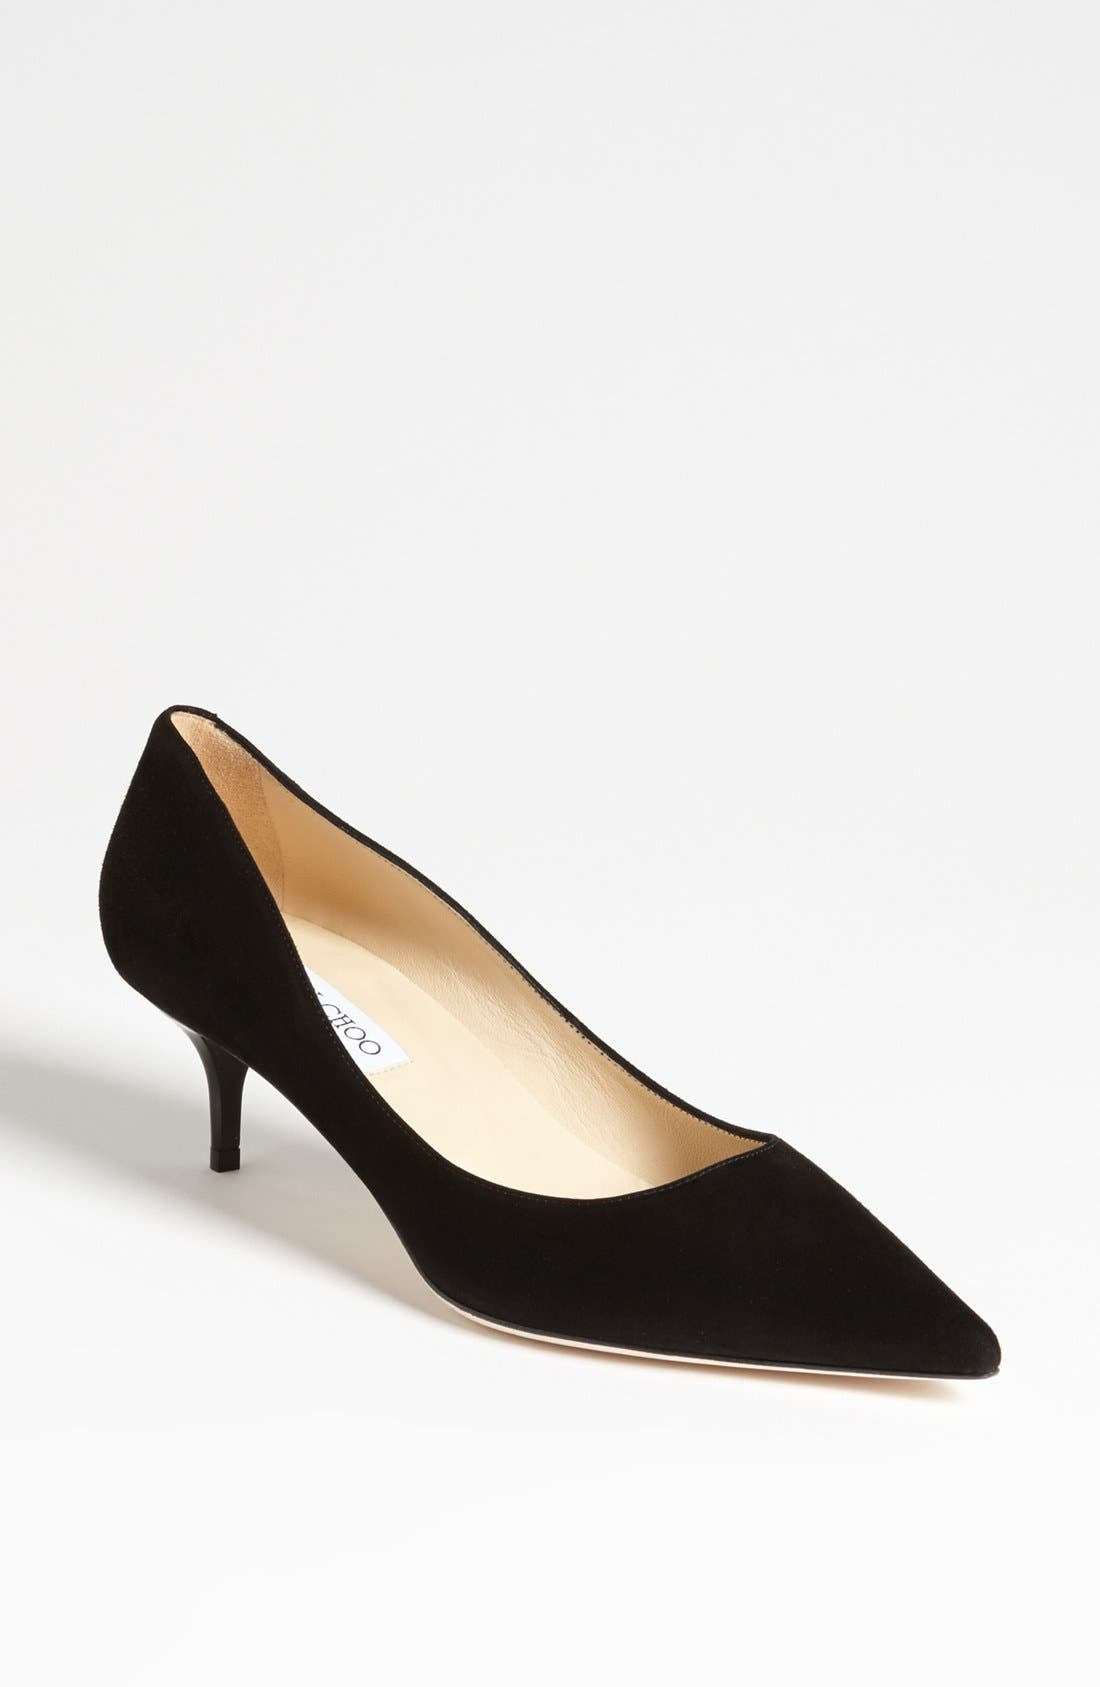 Main Image - Jimmy Choo 'Aza' Pointy Toe Pump